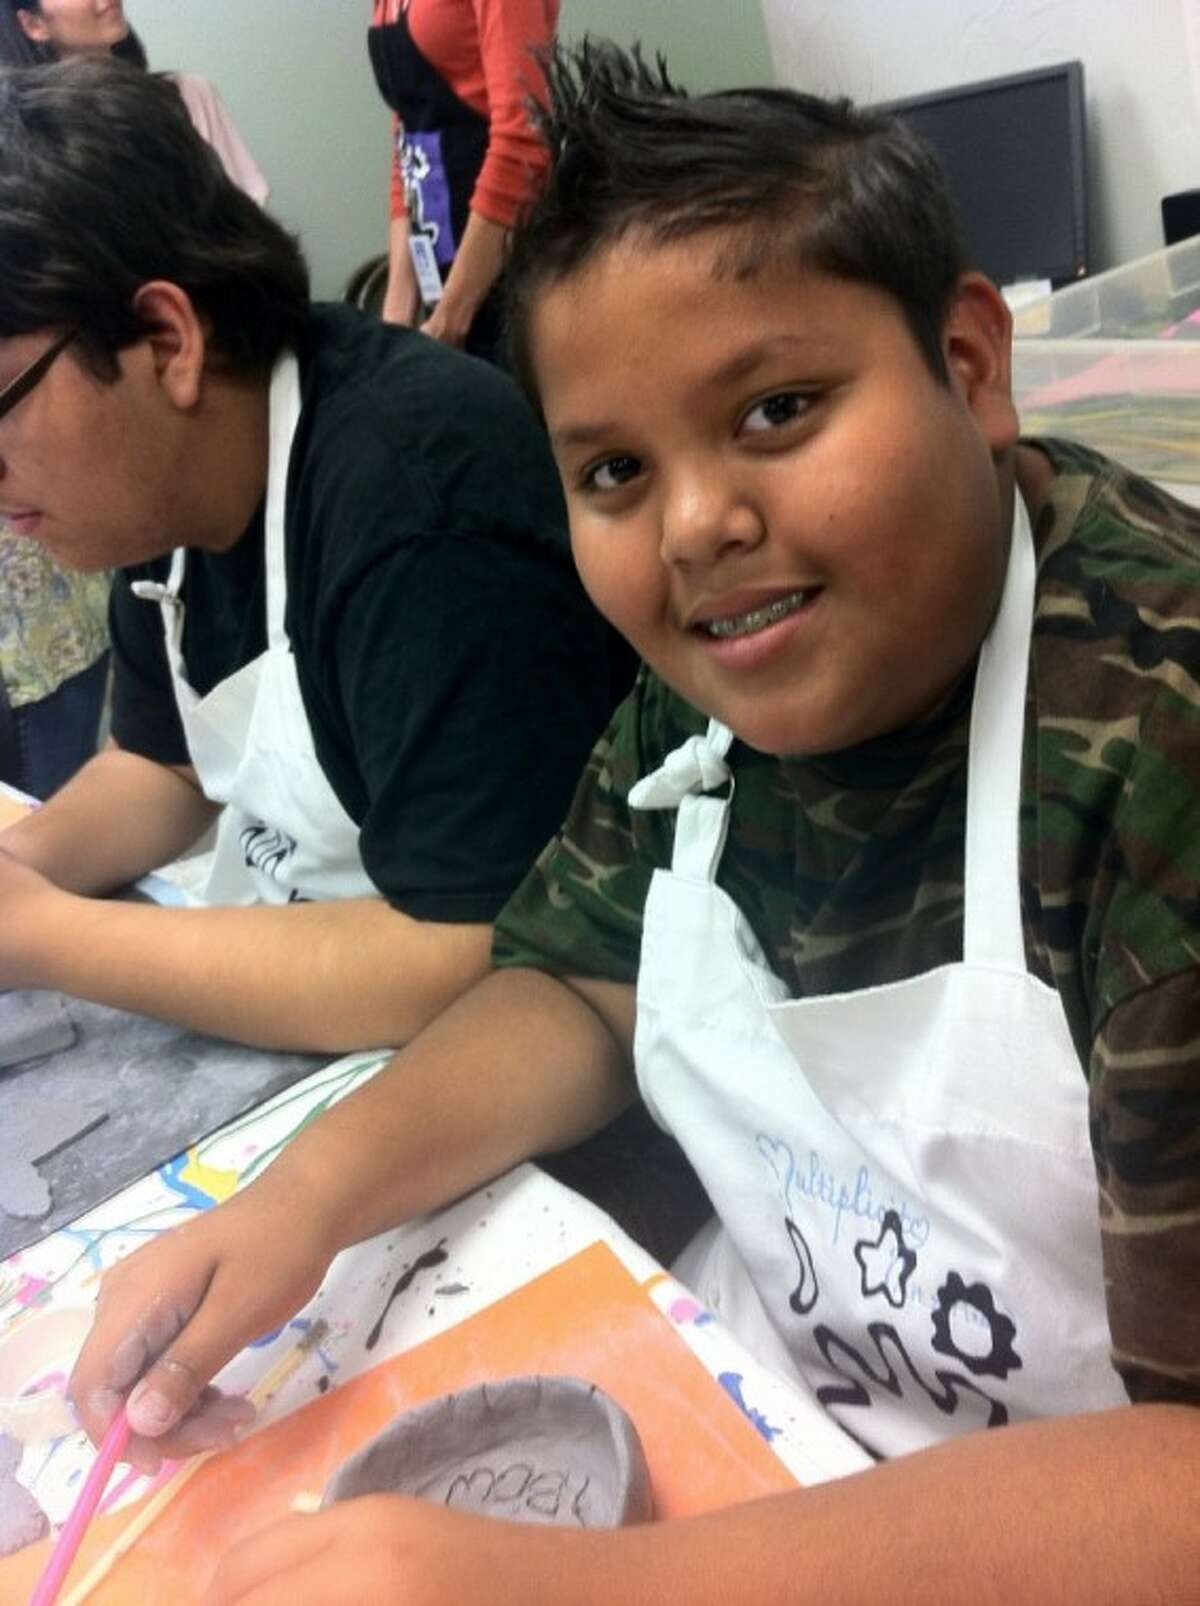 Kids enjoyed learning how to stay healthy through art.